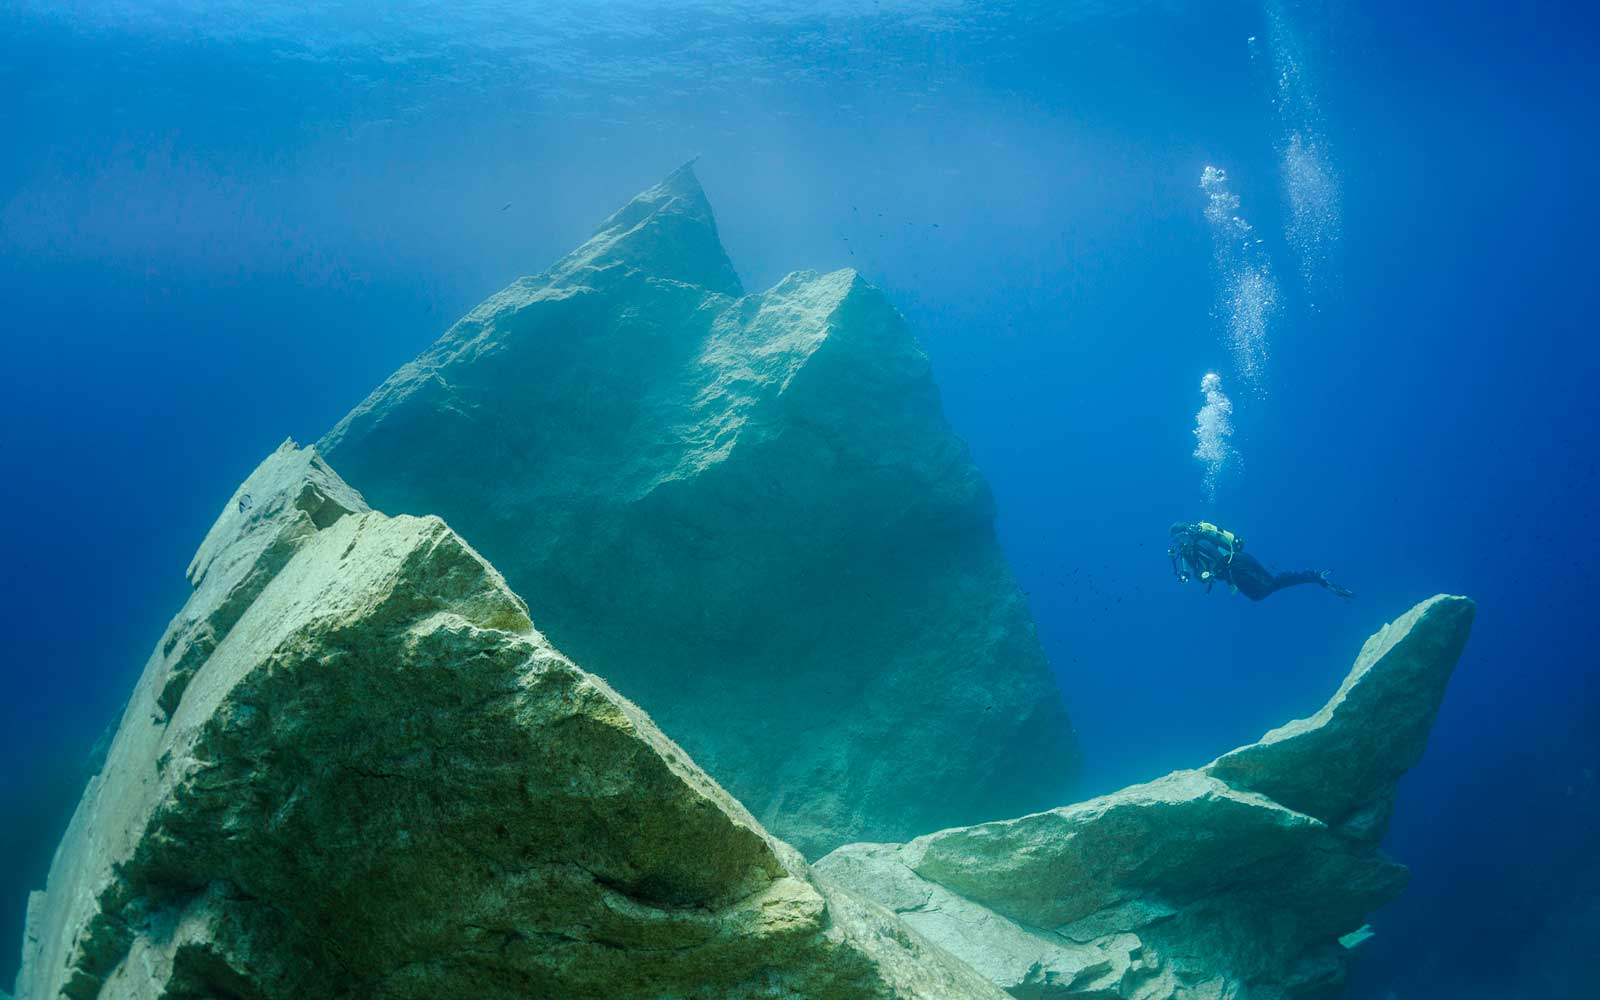 Malta's Azure Window May Be Underwater, but You Can Still Visit It